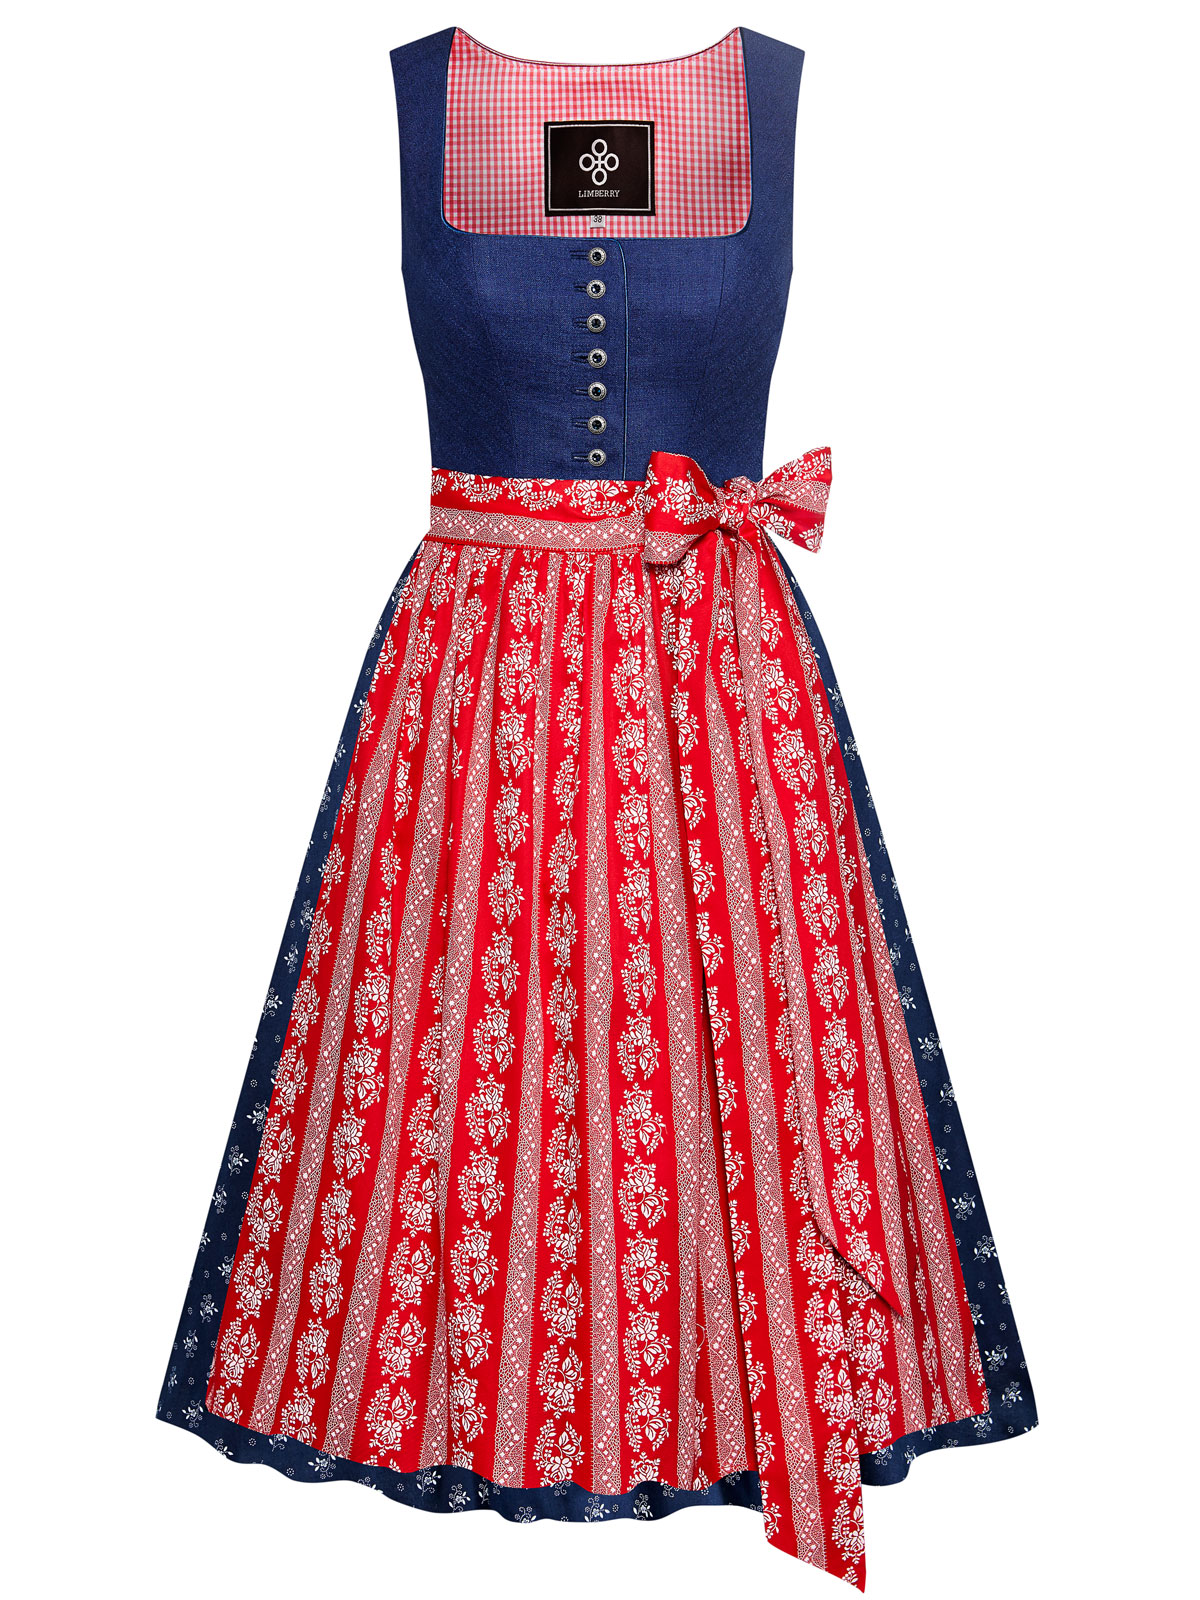 LIMBERRY Leinendirndl in Blau